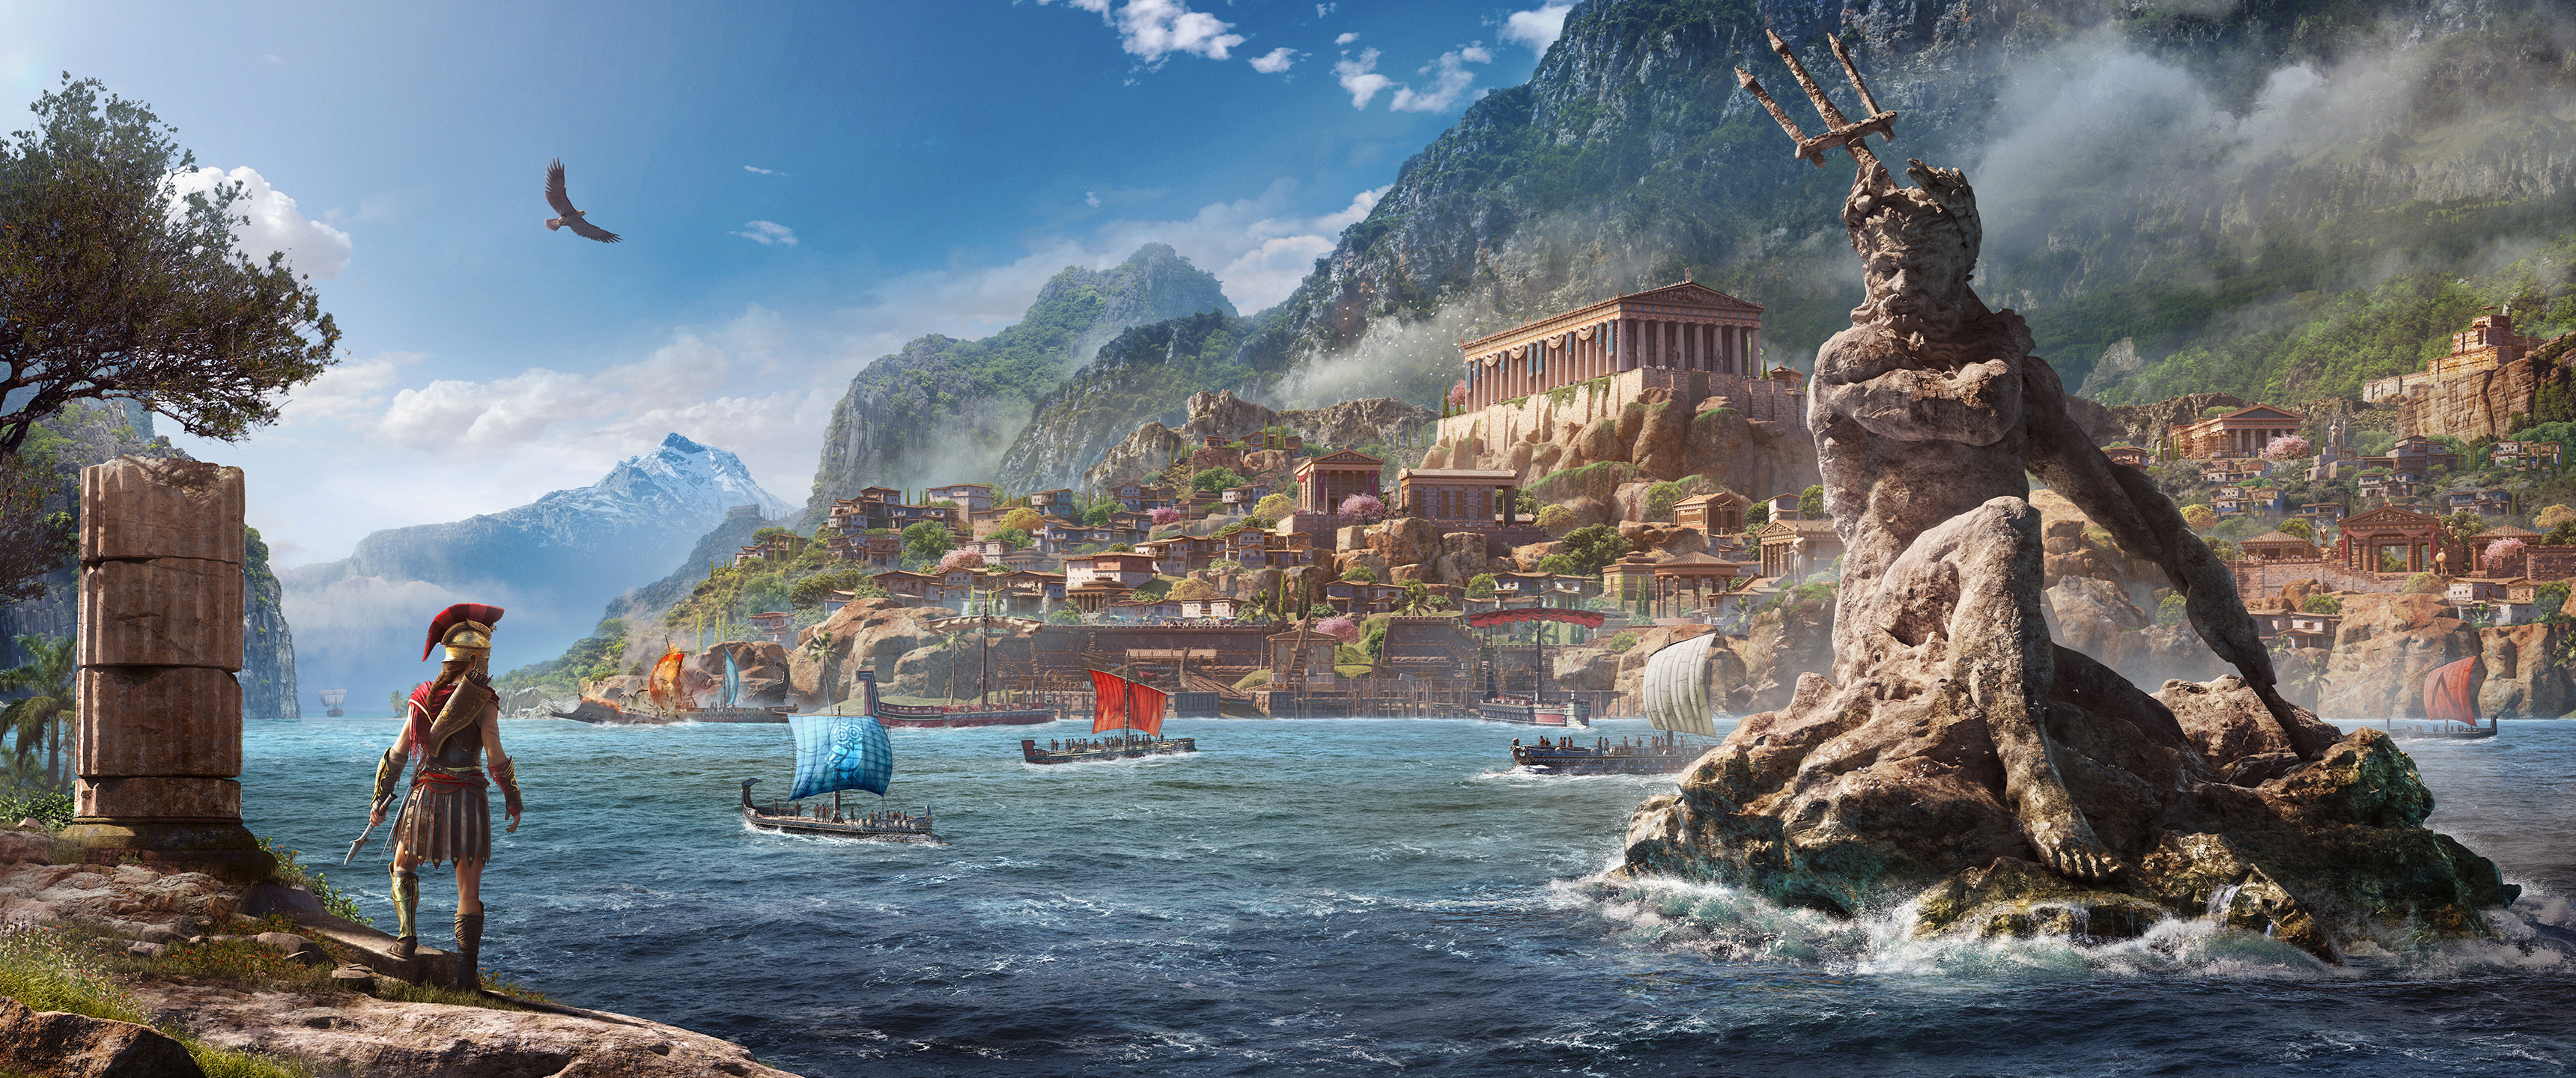 General 3440x1440 video games video game art Assassin's Creed Odyssey Greece ancient greece Spartans mythology ultrawide Assassin's Creed Kassandra